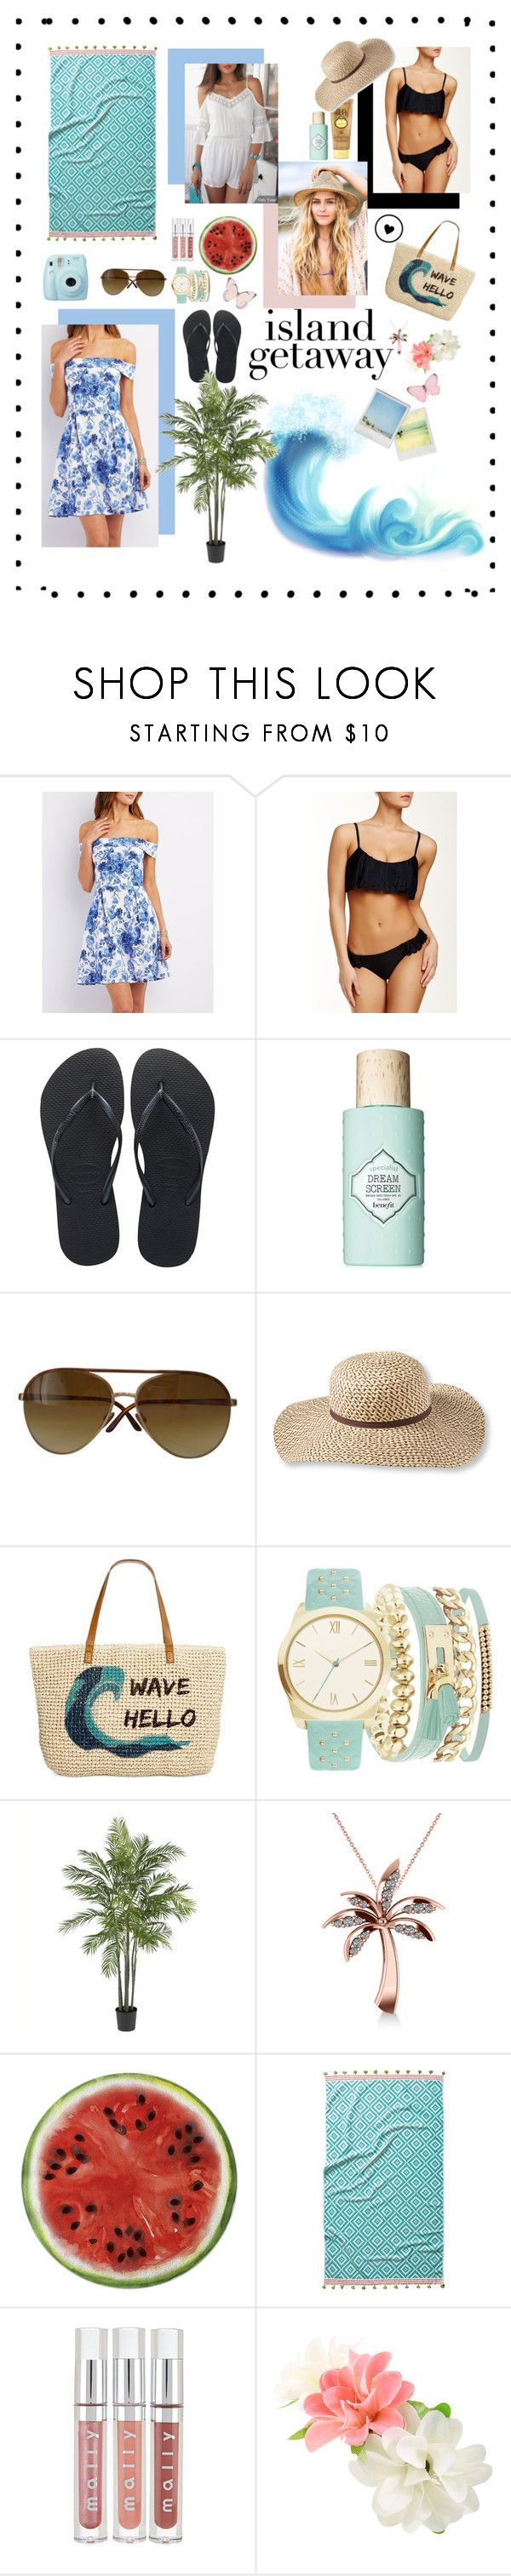 """""""Island getaway"""" by alycat63 ❤ liked on Polyvore featuring Charlotte Russe, Reef, Havaianas, Benefit, Fuji, Sun Bum, Tom Ford, L.L.Bean, Style & Co. and A.X.N.Y."""